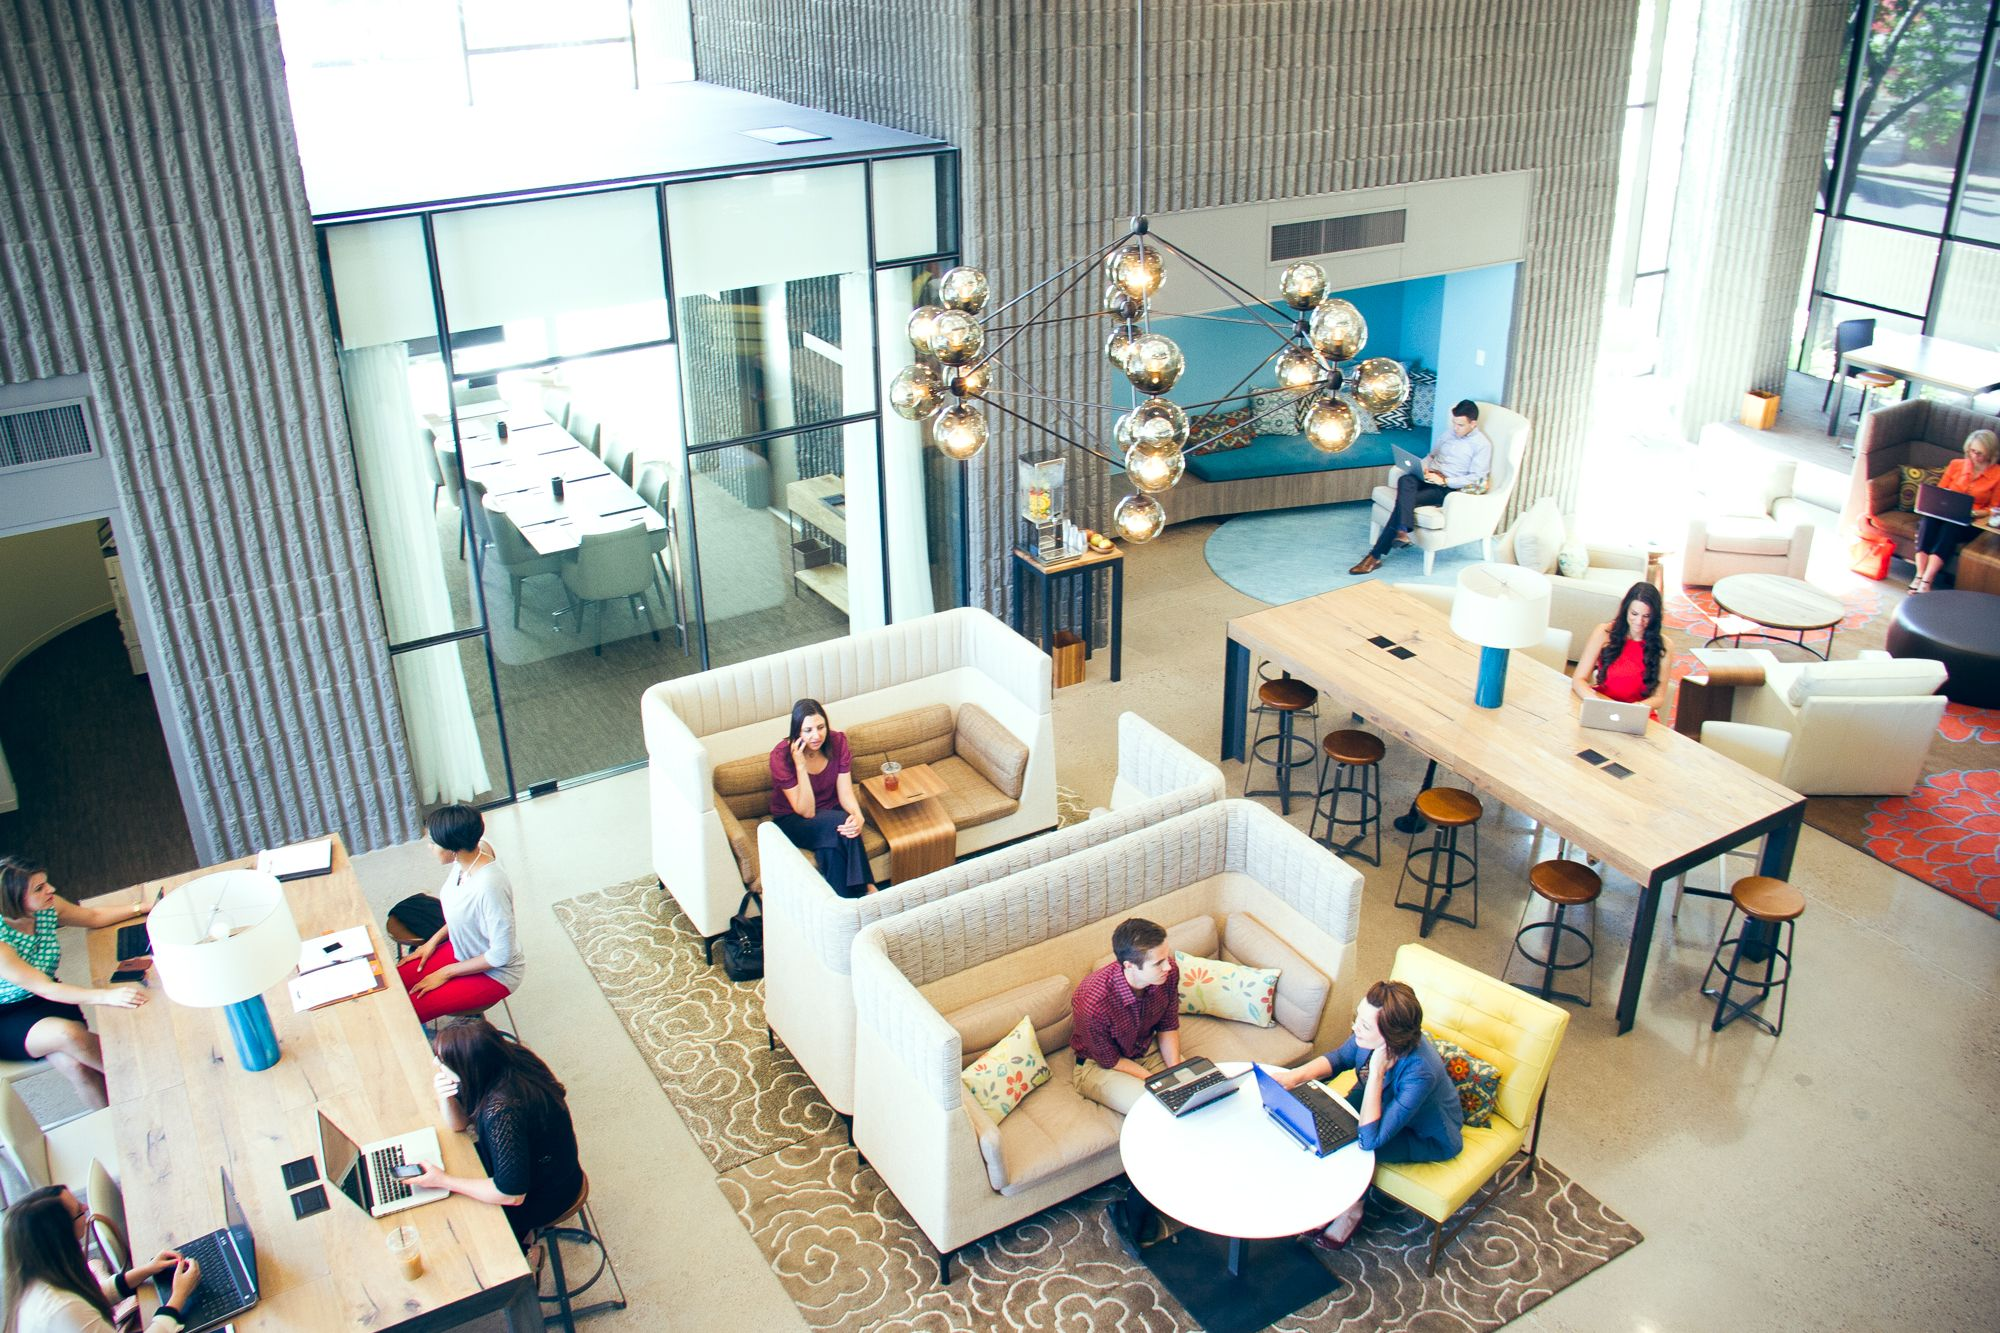 google office space. Innovative Learning Spaces Interior Design - Google Search Office Space